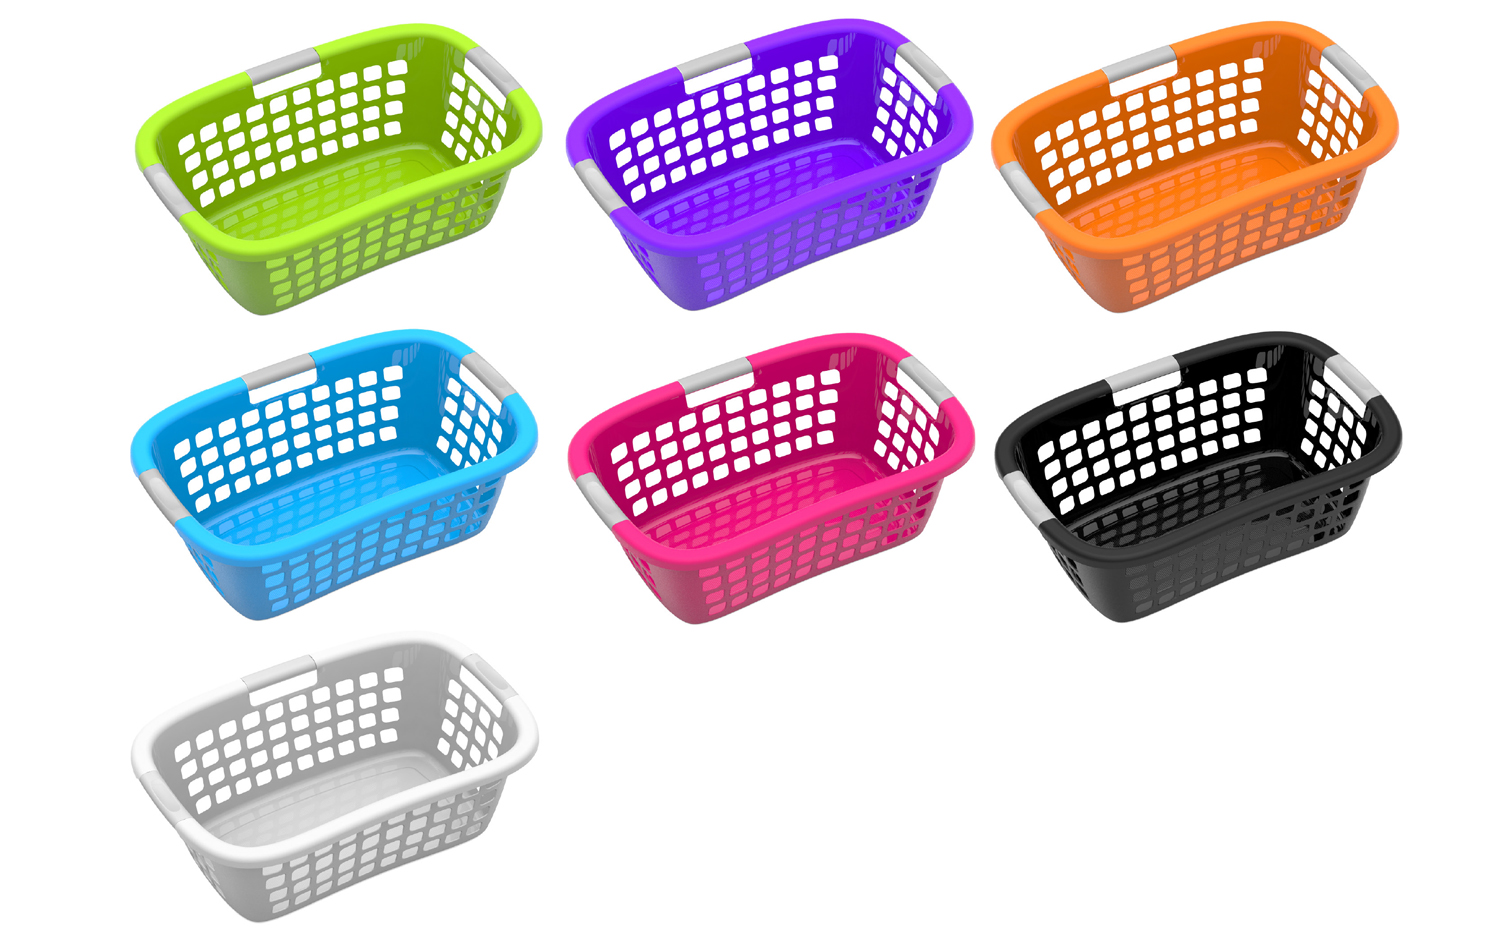 HipBasket colors